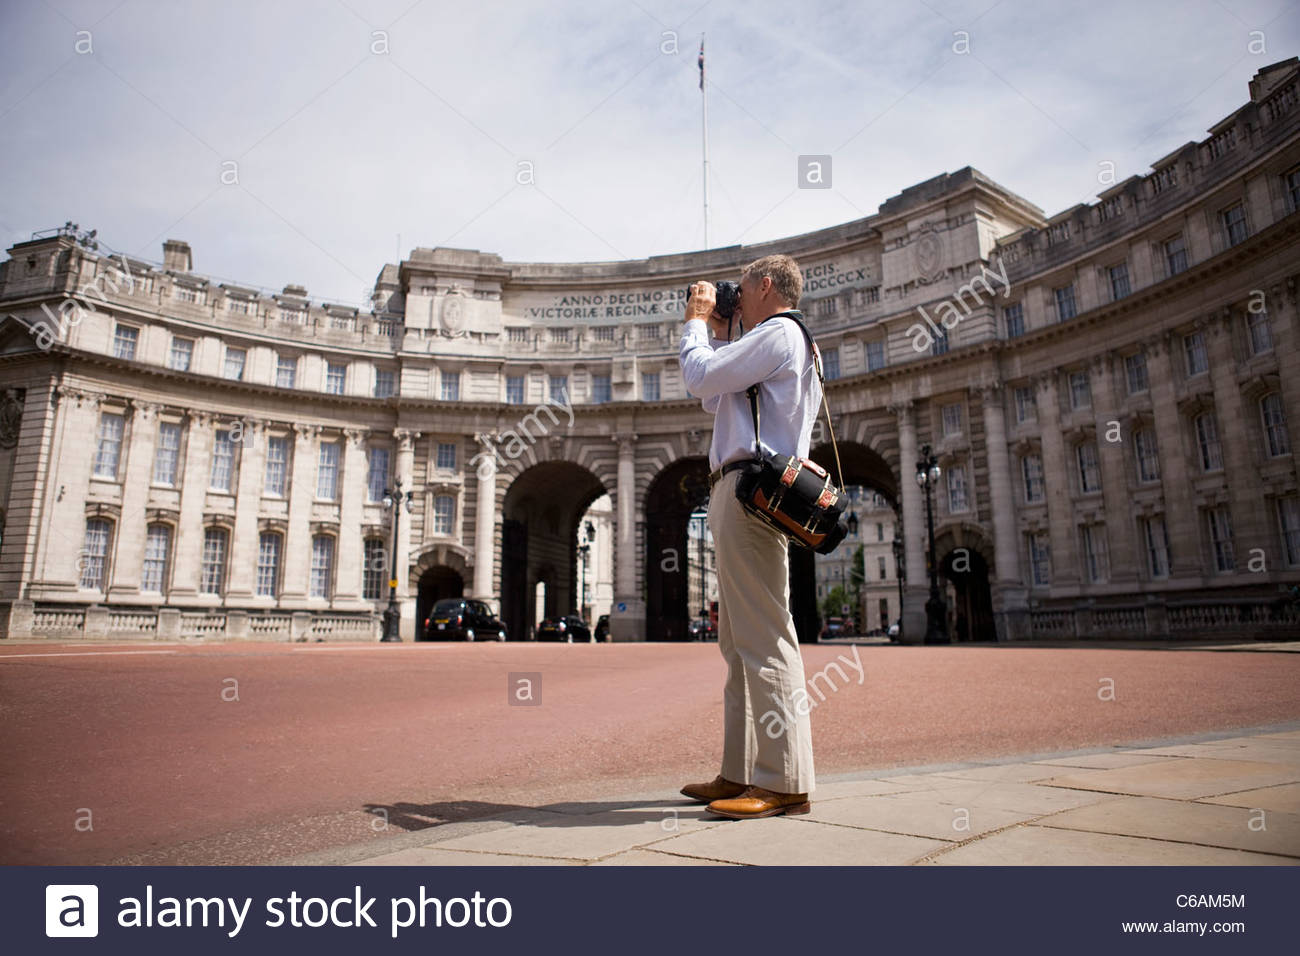 A middle-aged man standing by Admiralty Arch, taking a photograph - Stock Image